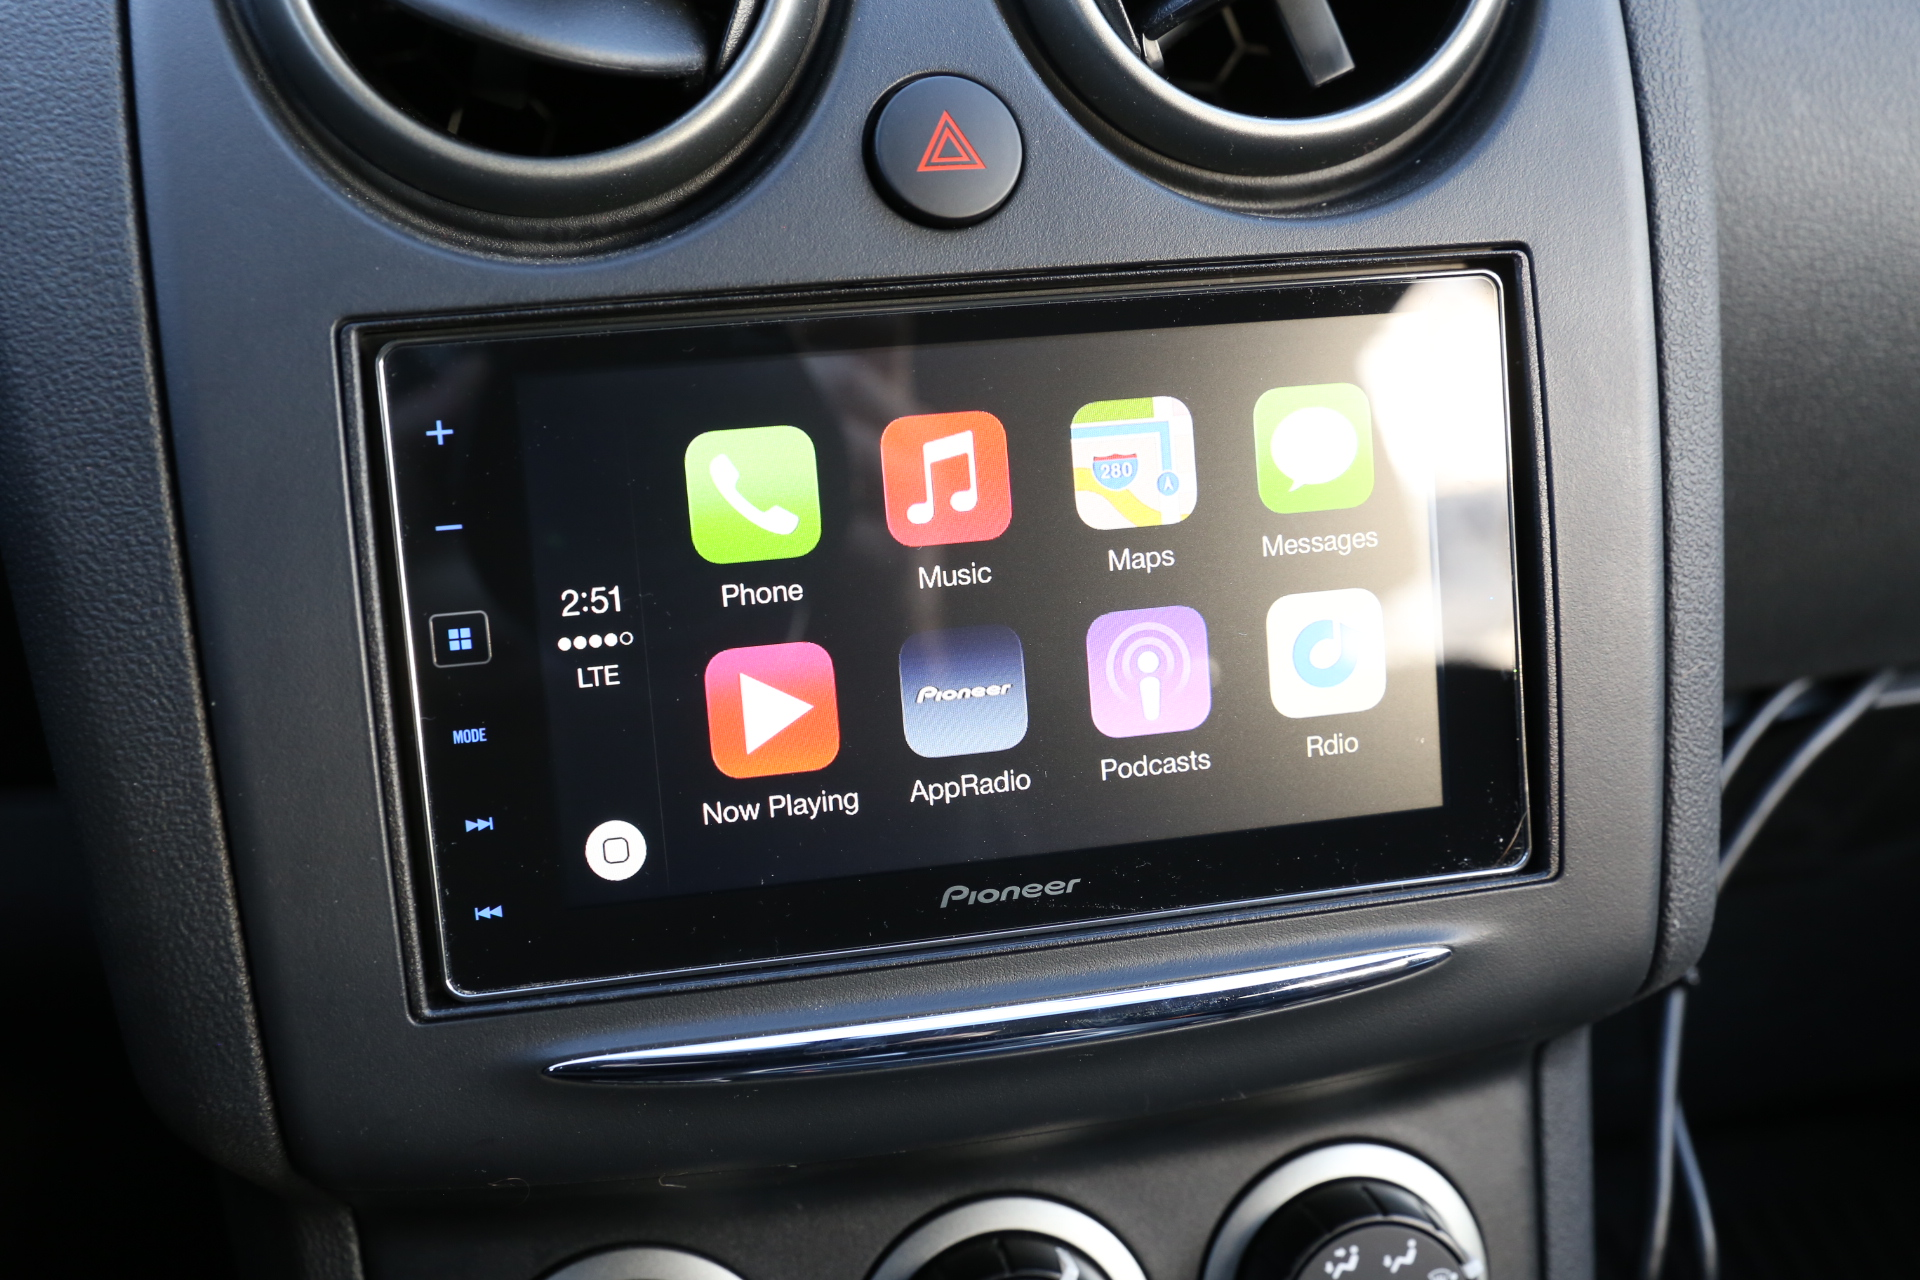 Pioneer Appradio 4 With Apple Carplay Review Techcrunch